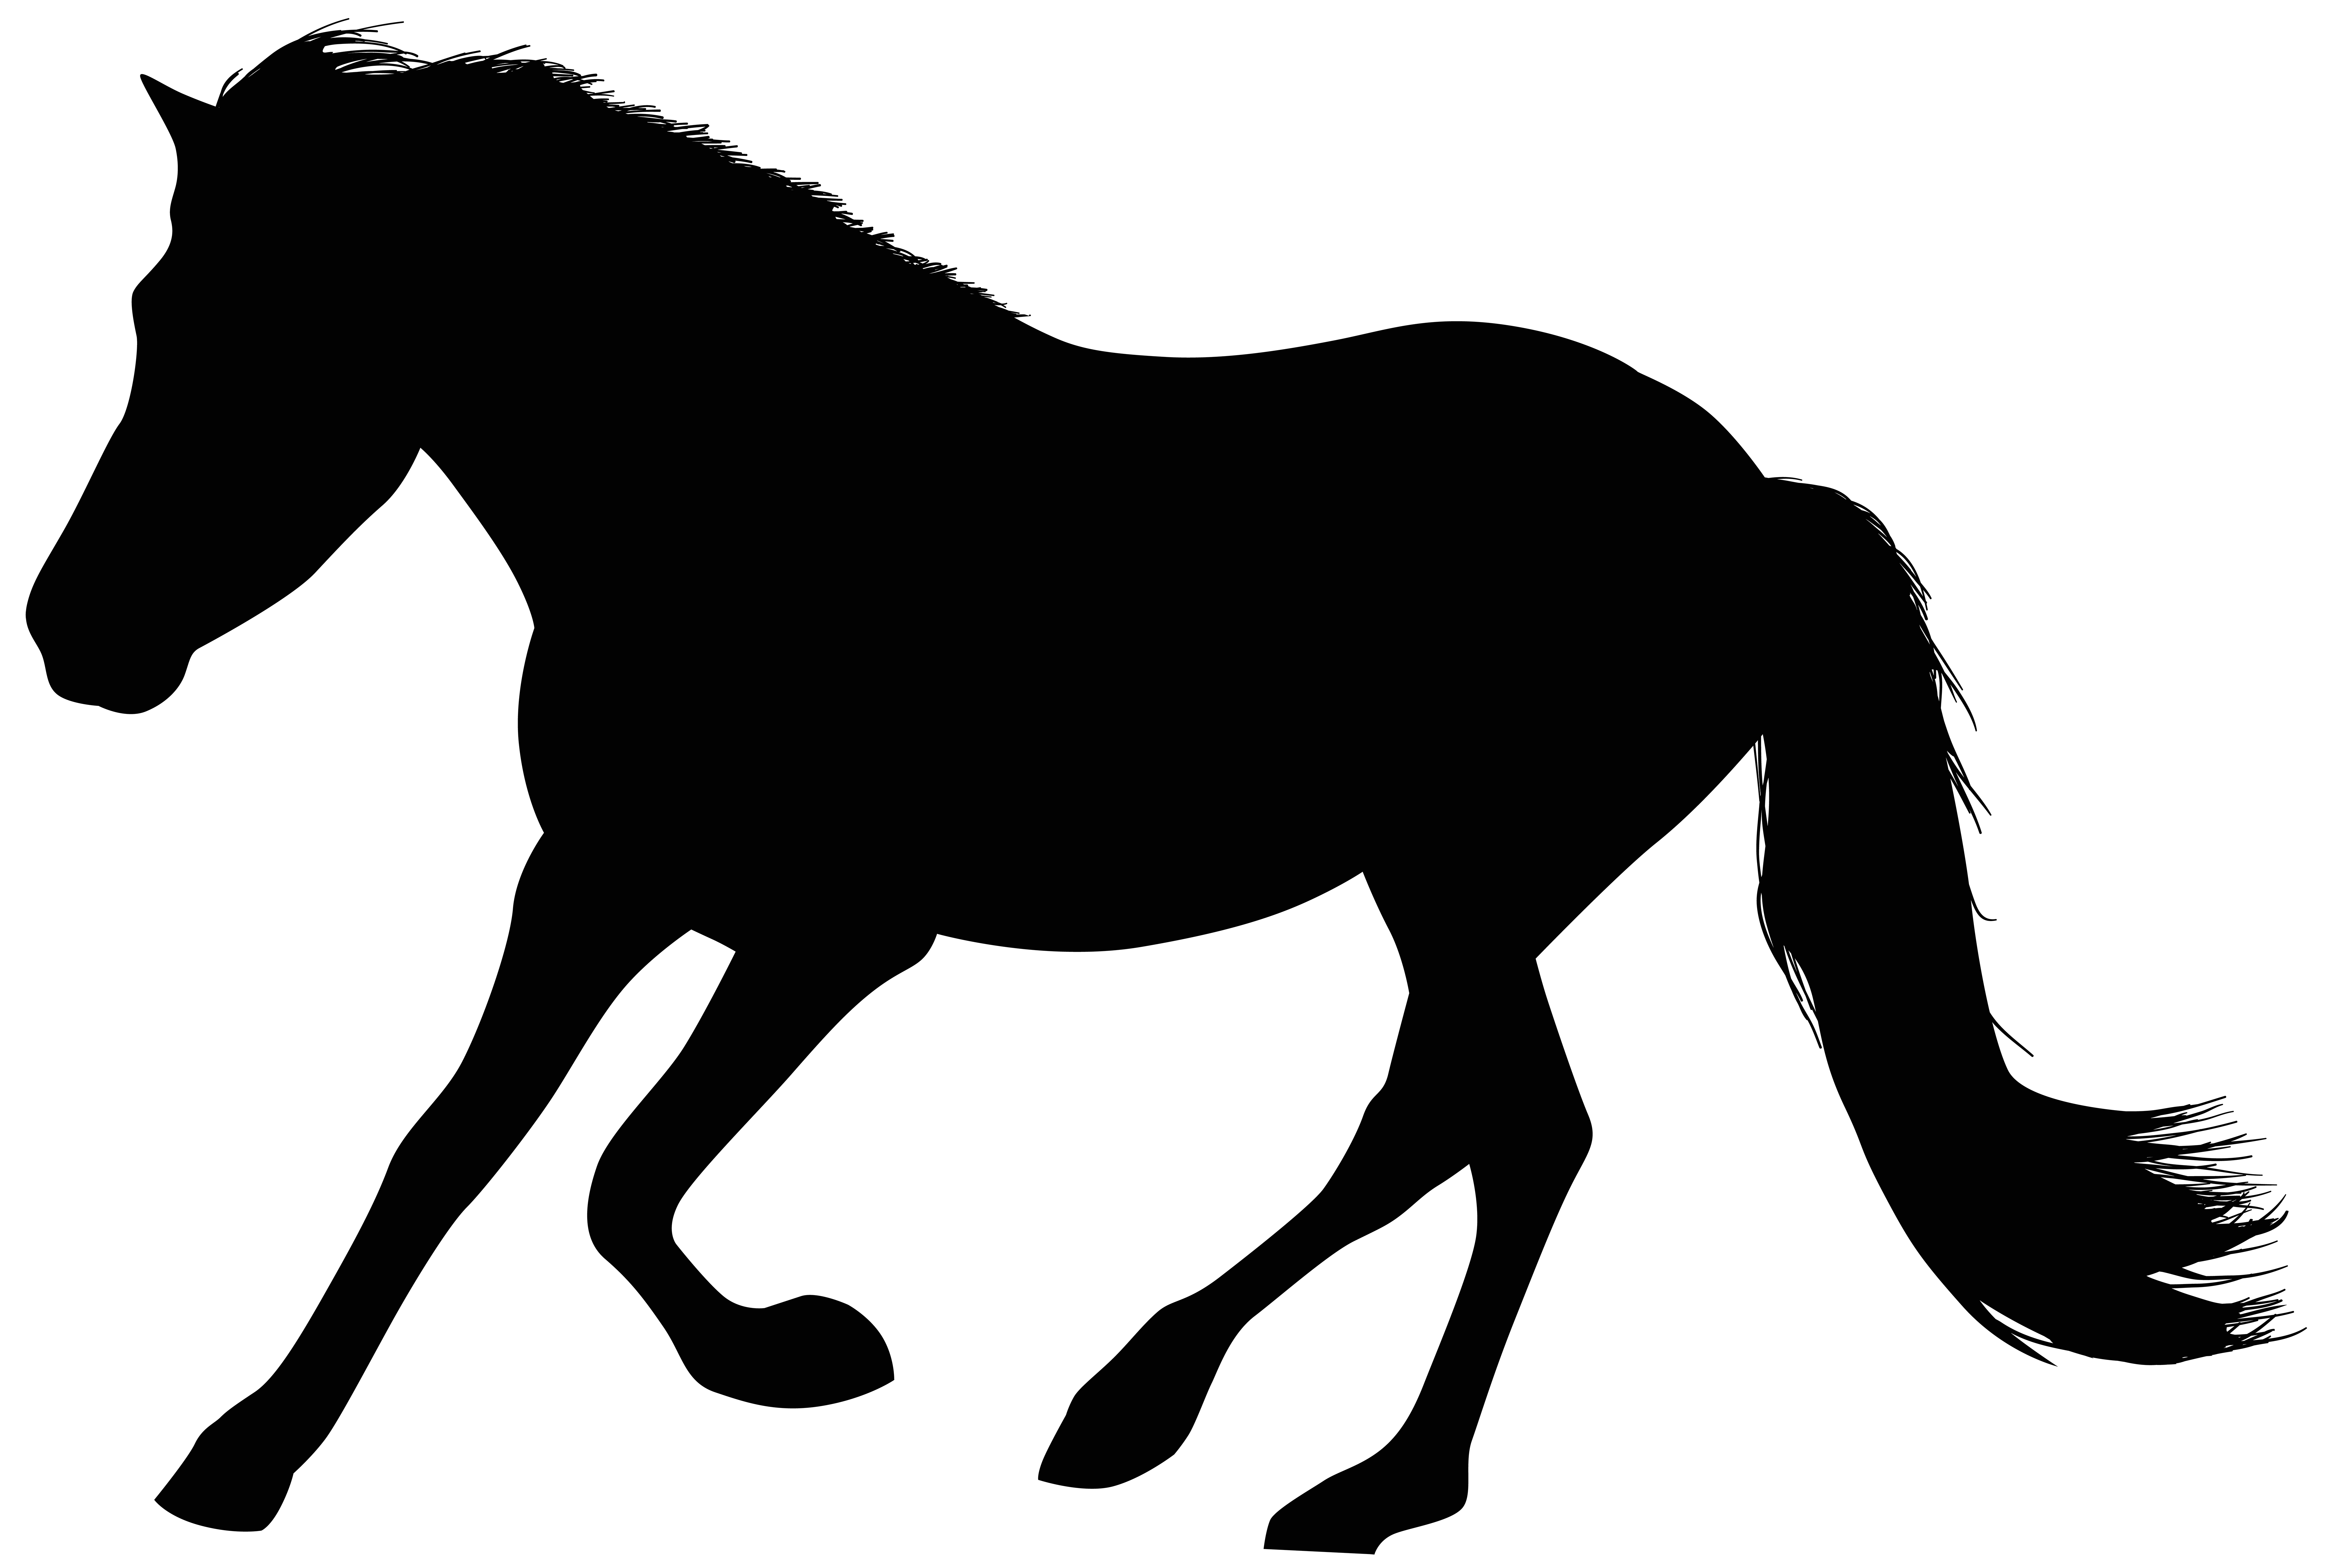 Running horse silhouette png. Clip art image gallery